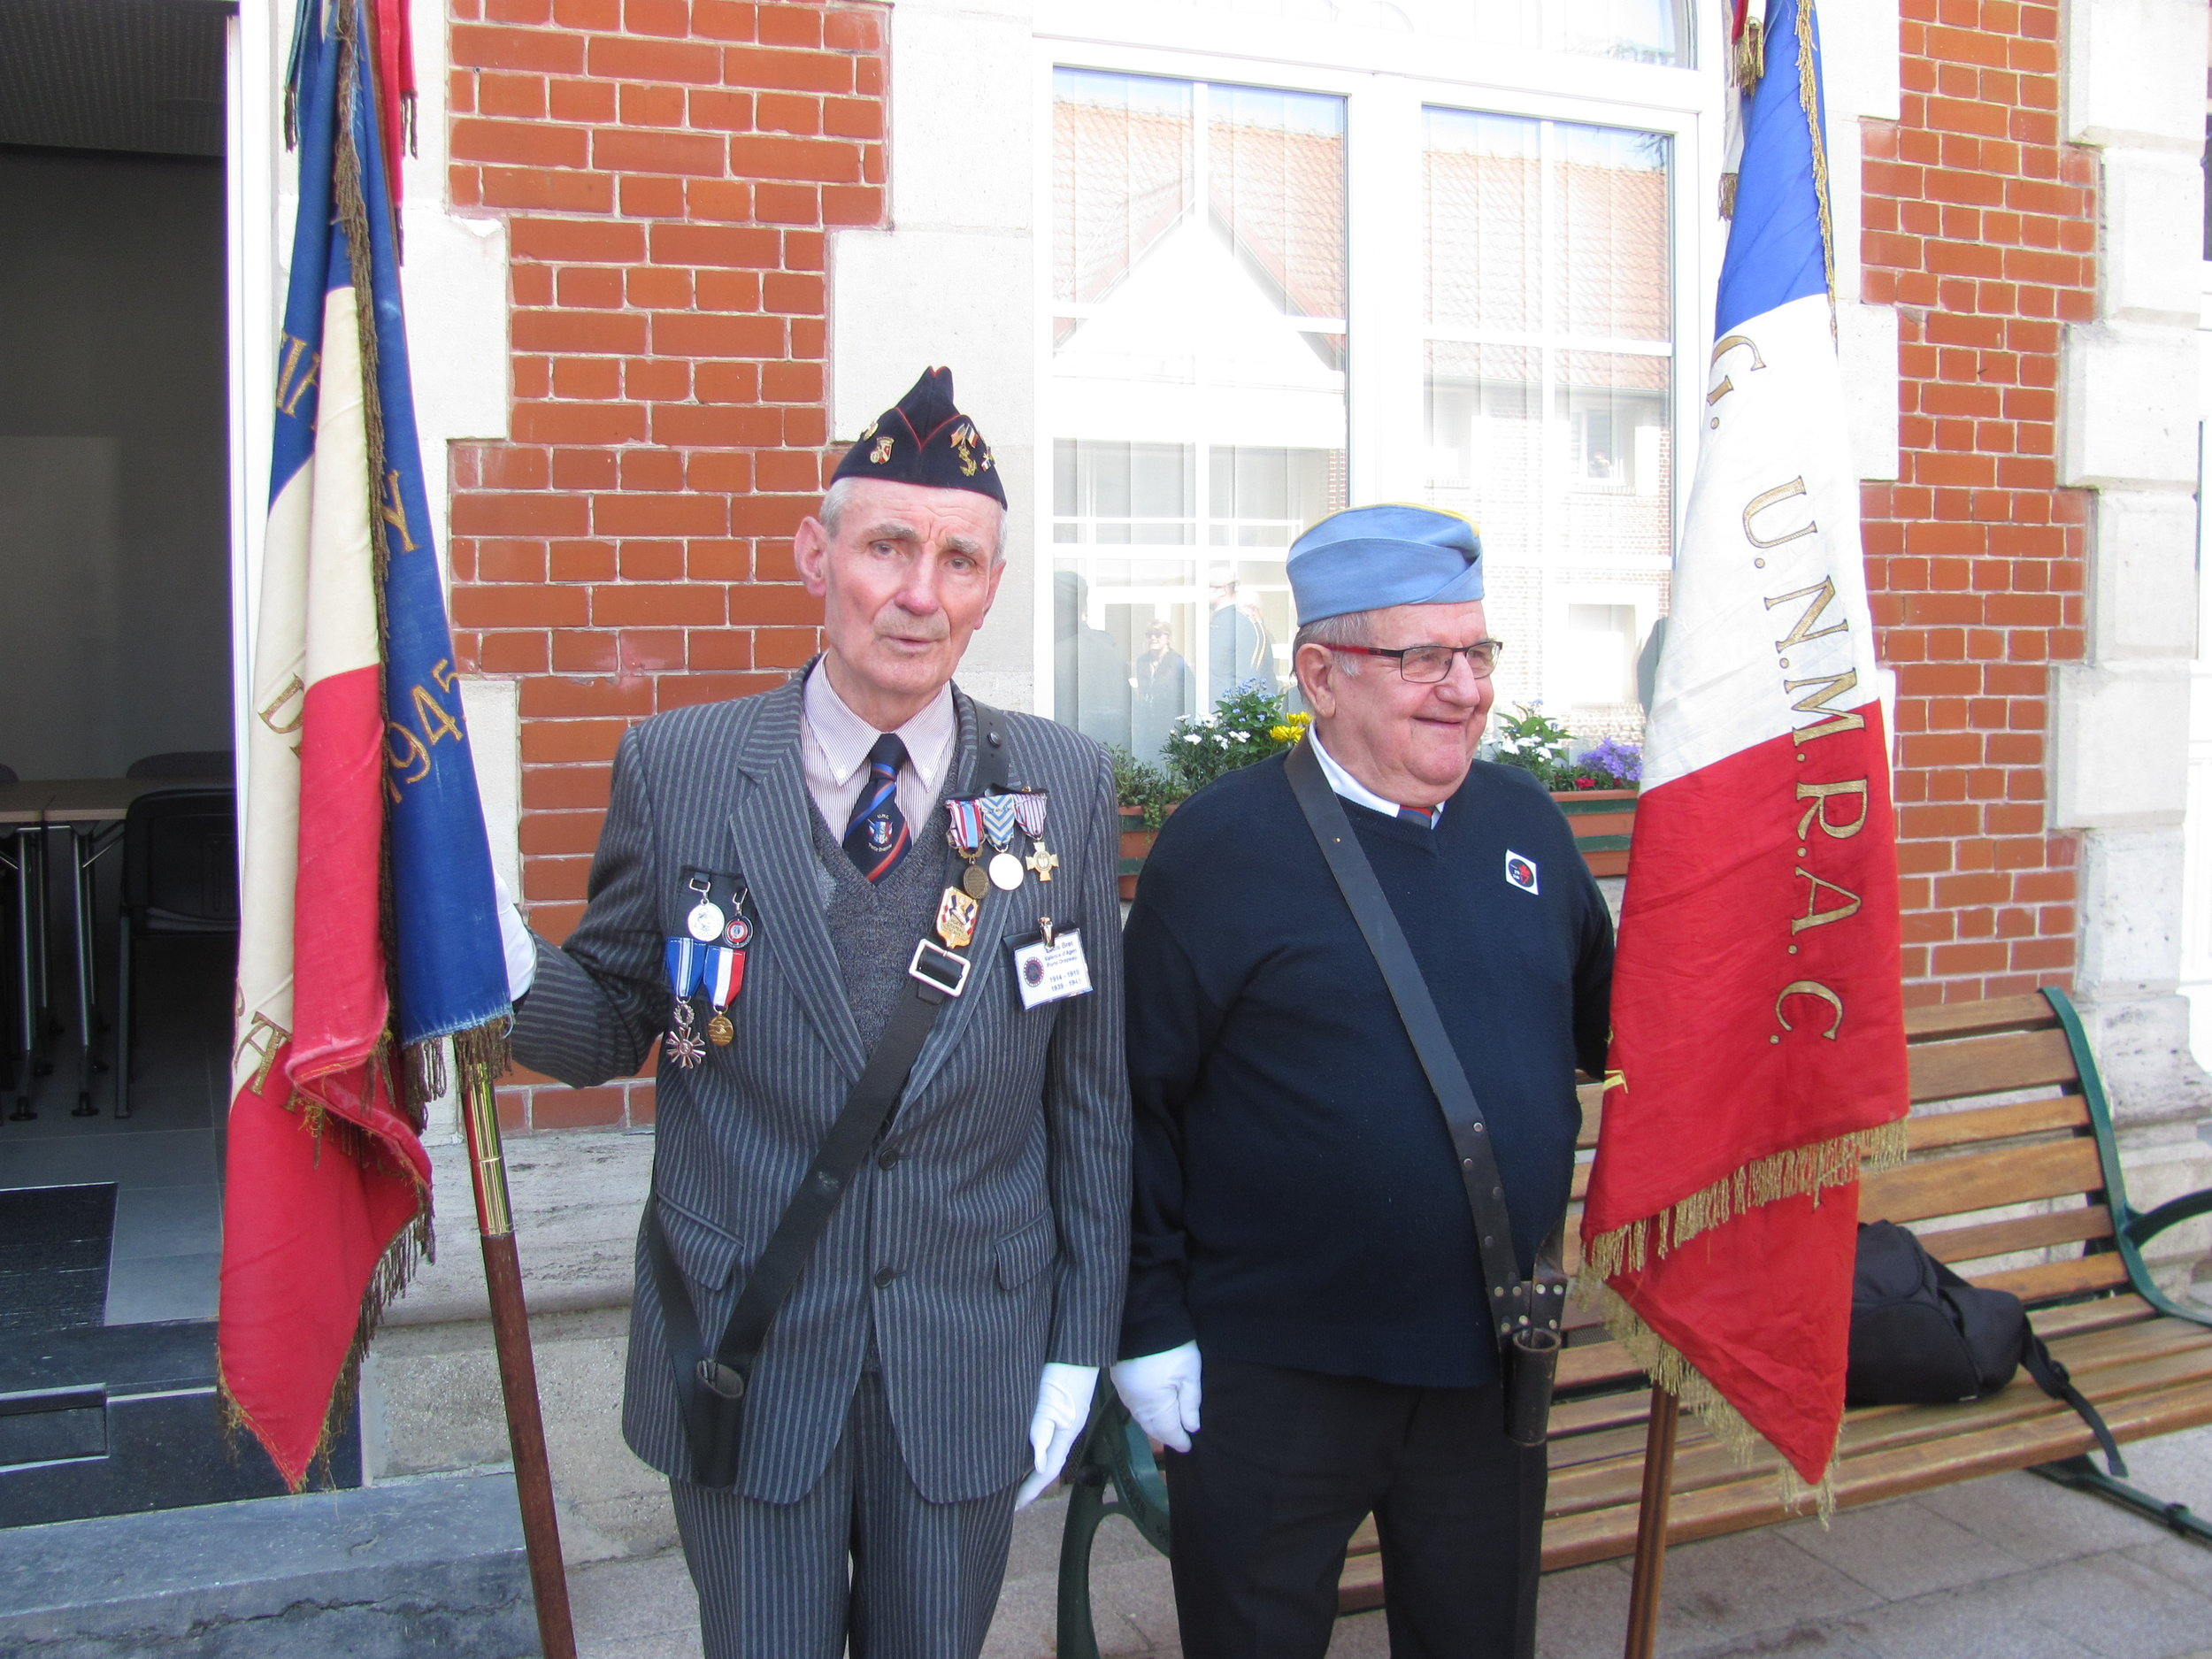 Portes drapeux - flag carriers from Thelus Veterens' Associations participate in the ceremony.